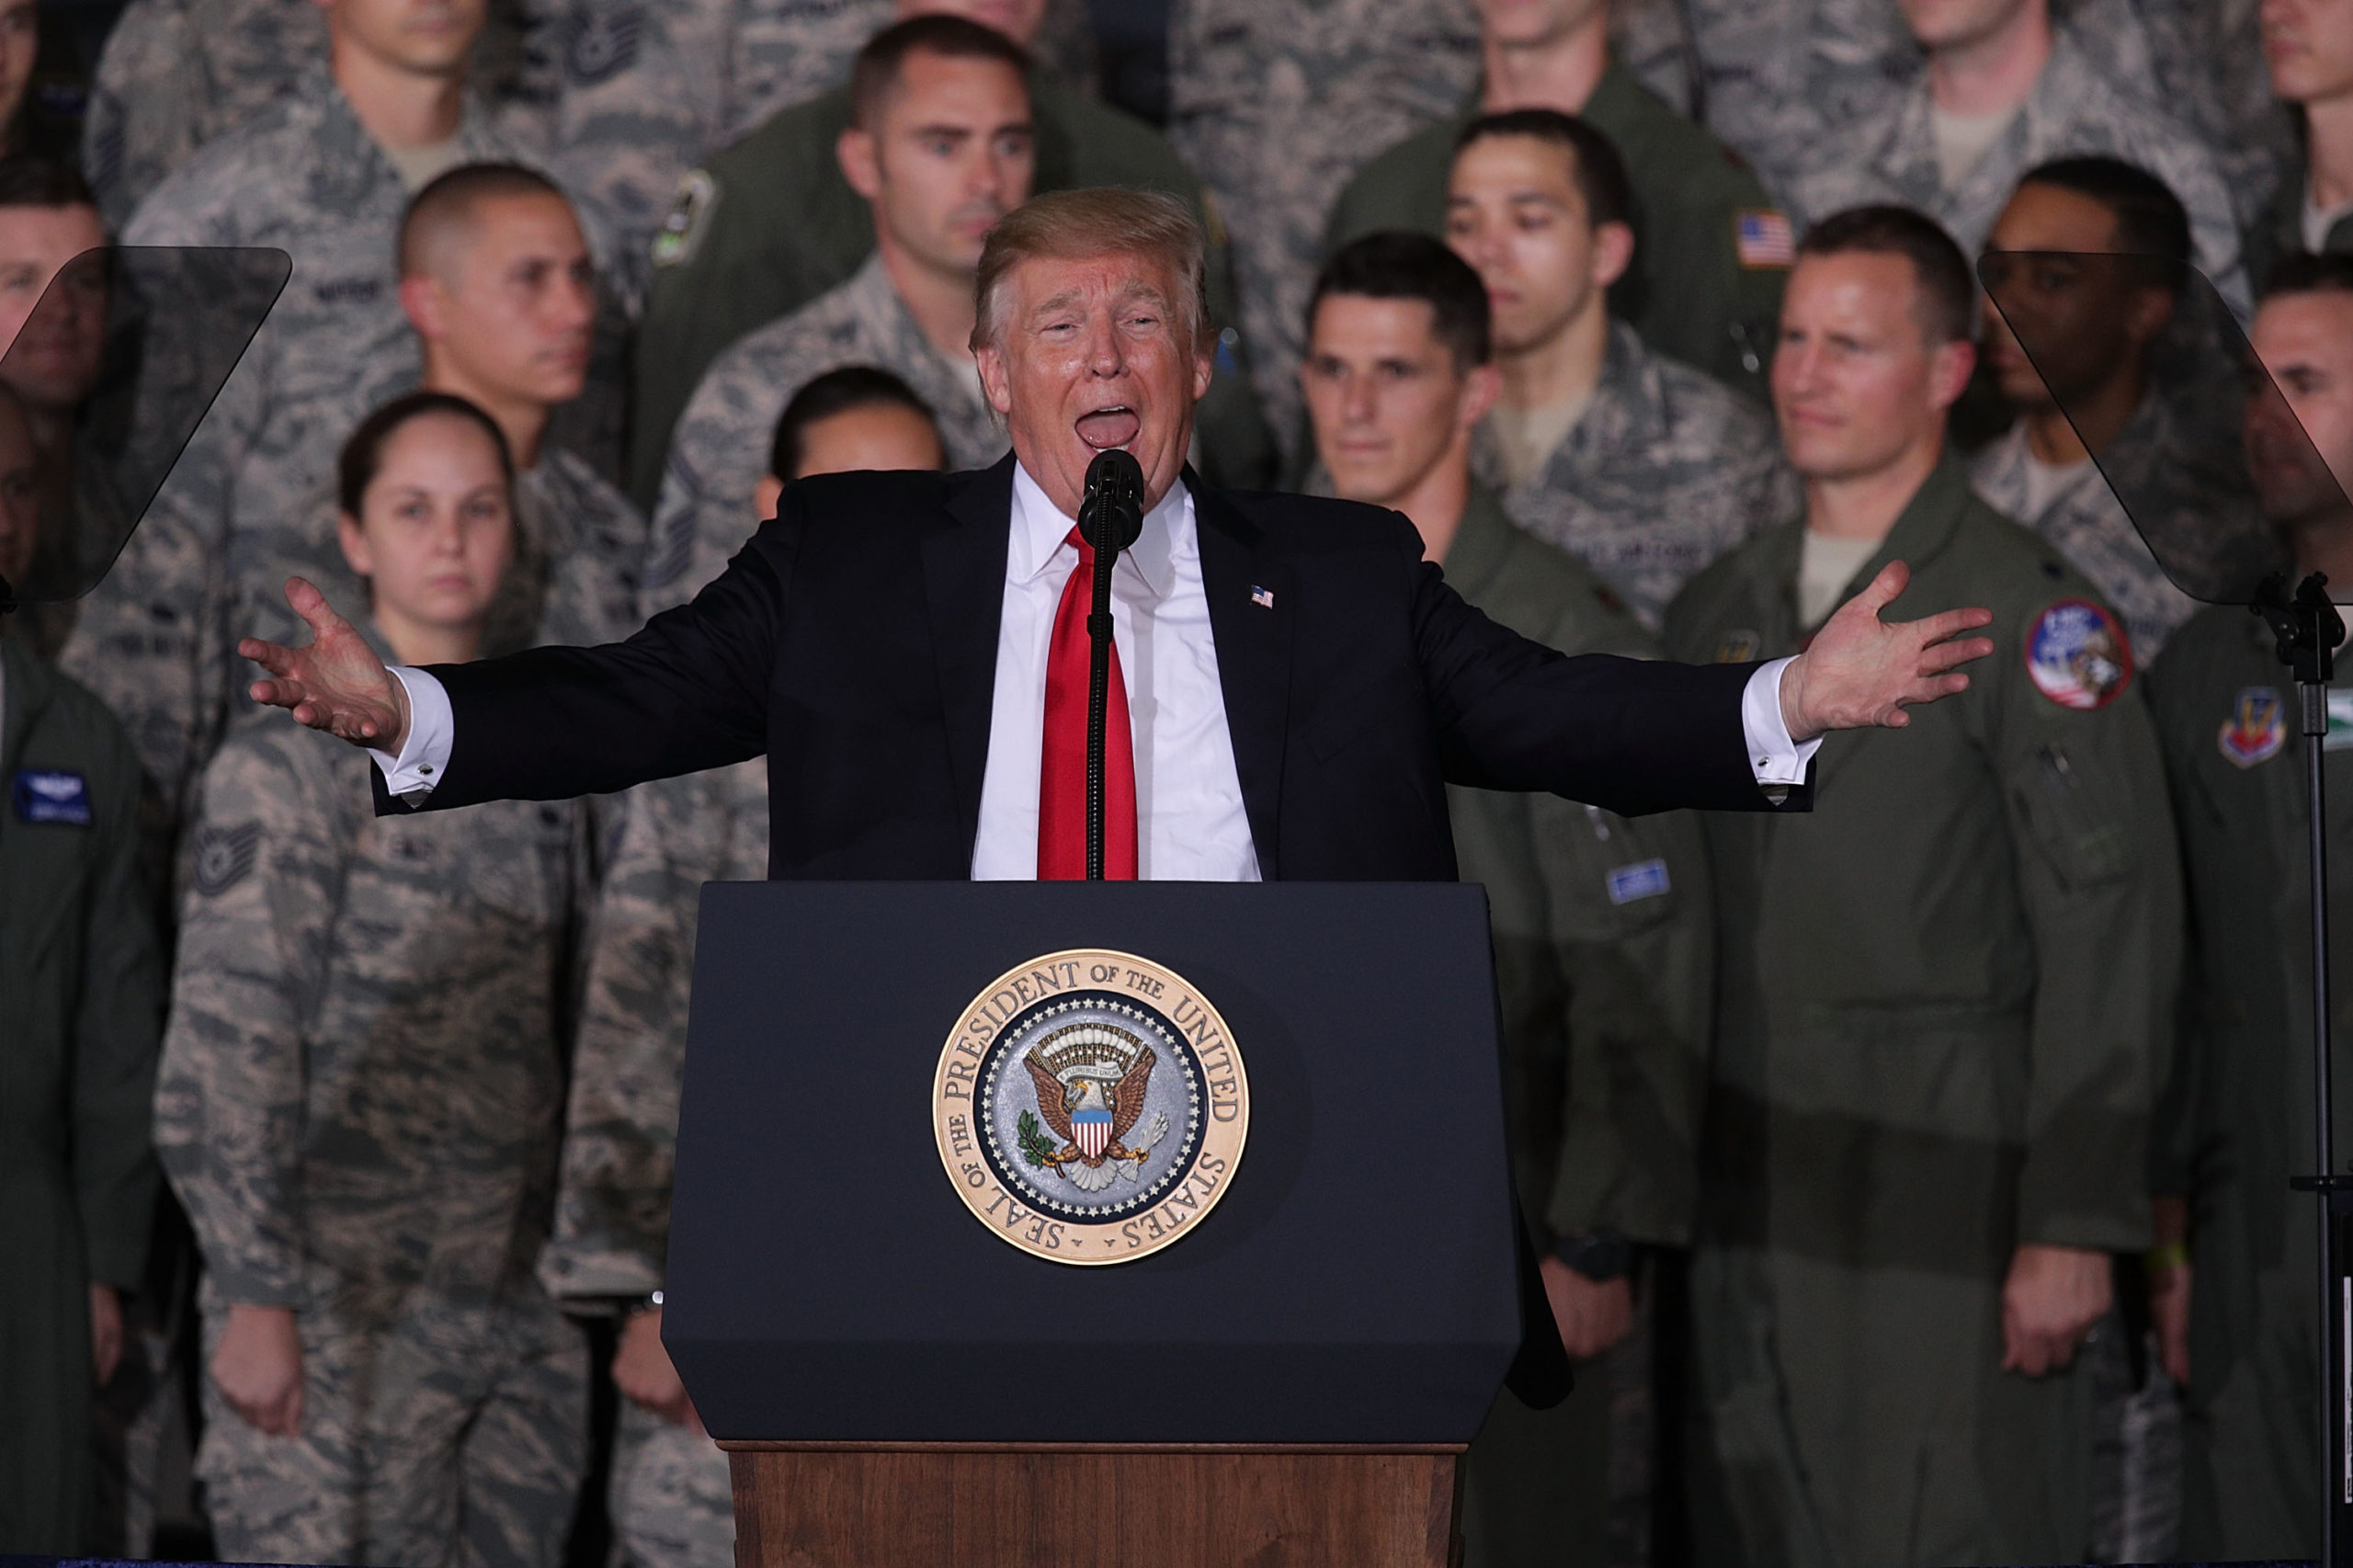 JOINT BASE ANDREWS, MD - SEPTEMBER 15: U.S. President Donald Trump speaks to Air Force personnel during an event September 15, 2017 at Joint Base Andrews in Maryland. President Trump attended the event to celebrate the 70th birthday of the U.S. Air Force. (Photo by Alex Wong/Getty Images)